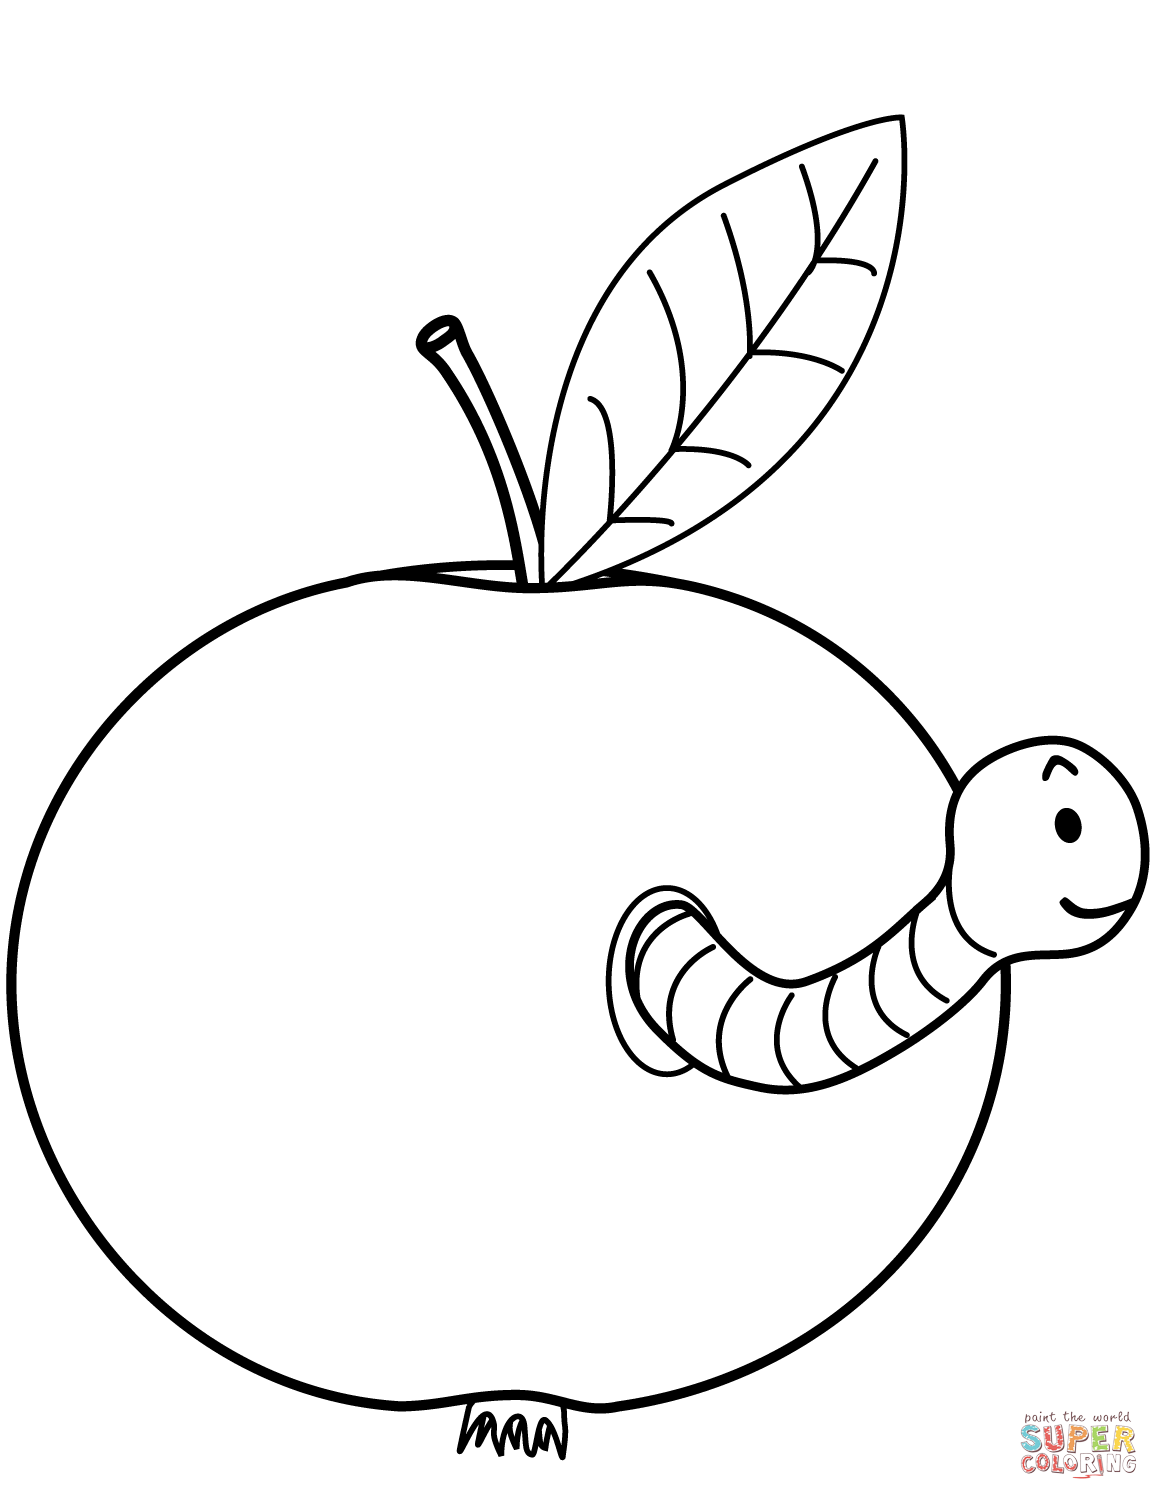 Worm Is Coming Out Of Apple Coloring Page